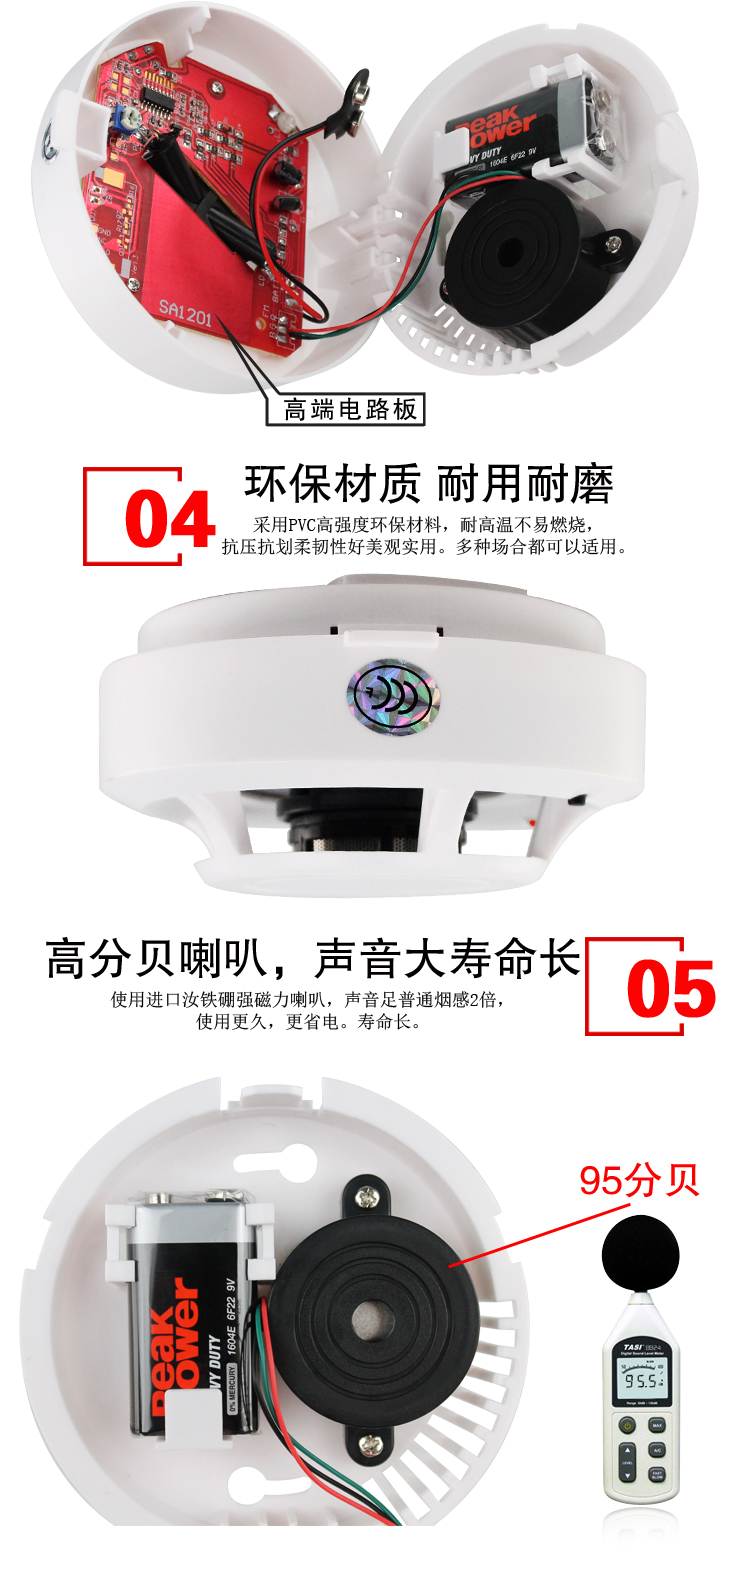 Fire Detector Home System Smoke Sensor Alarm 433mhz Working Frequencyremote Start Motorcycle Alarmled Type 064